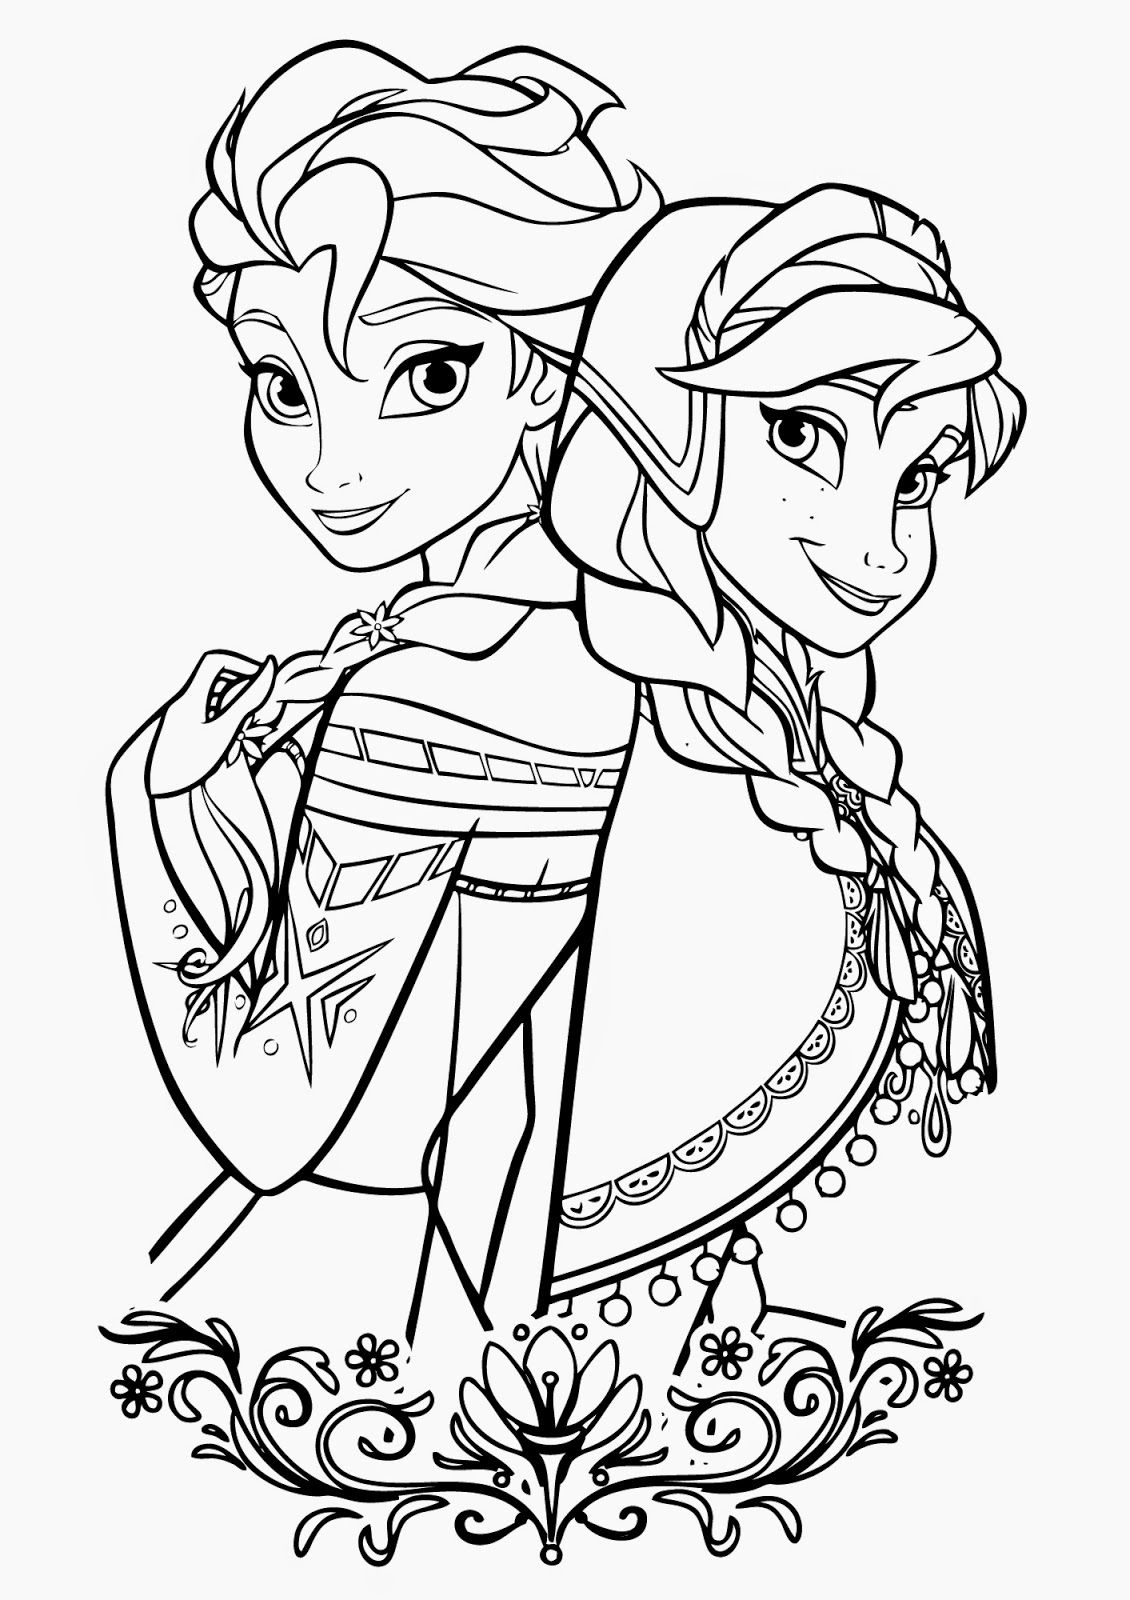 Frozen Coloring Pages Gallery 12o - Save it to your computer